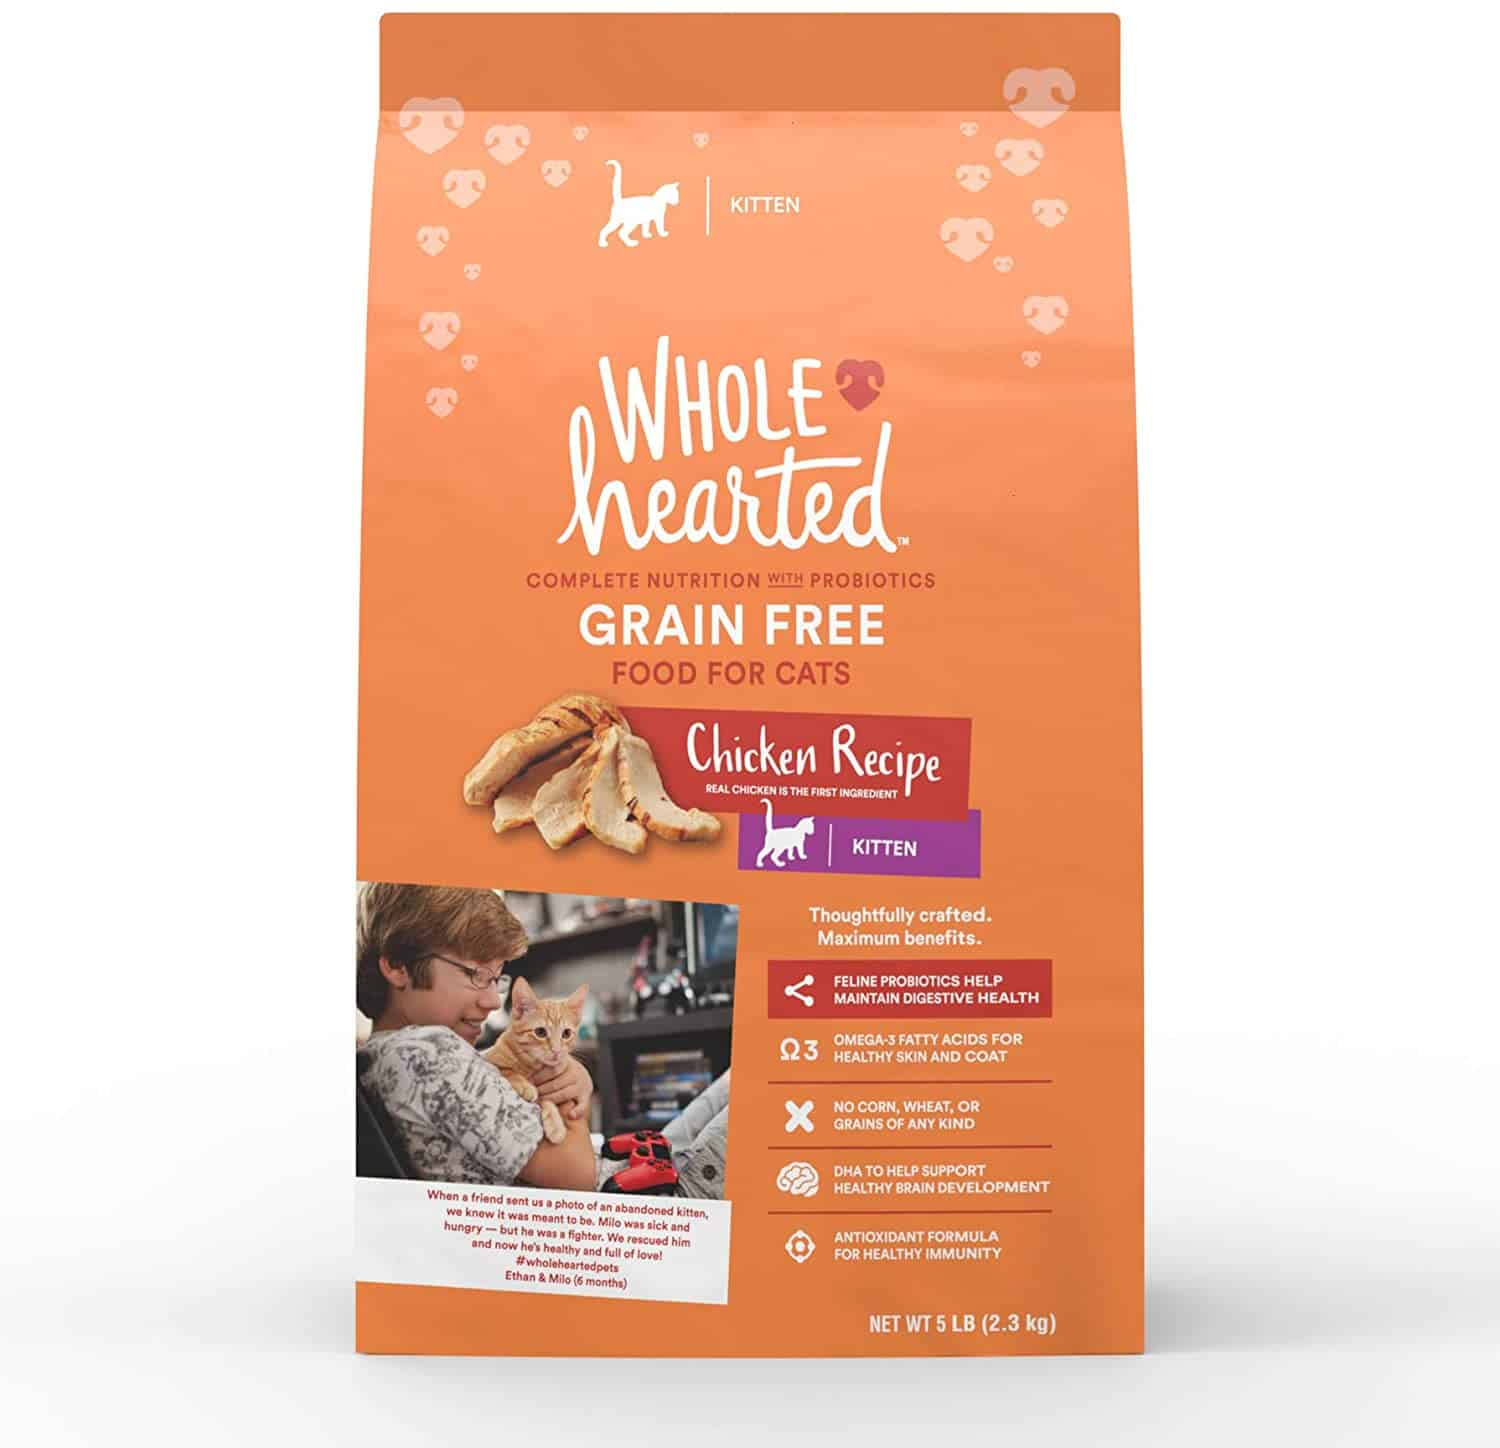 WholeHearted Cat Food Review 2020: Good Quality, Affordable Cat Food 2